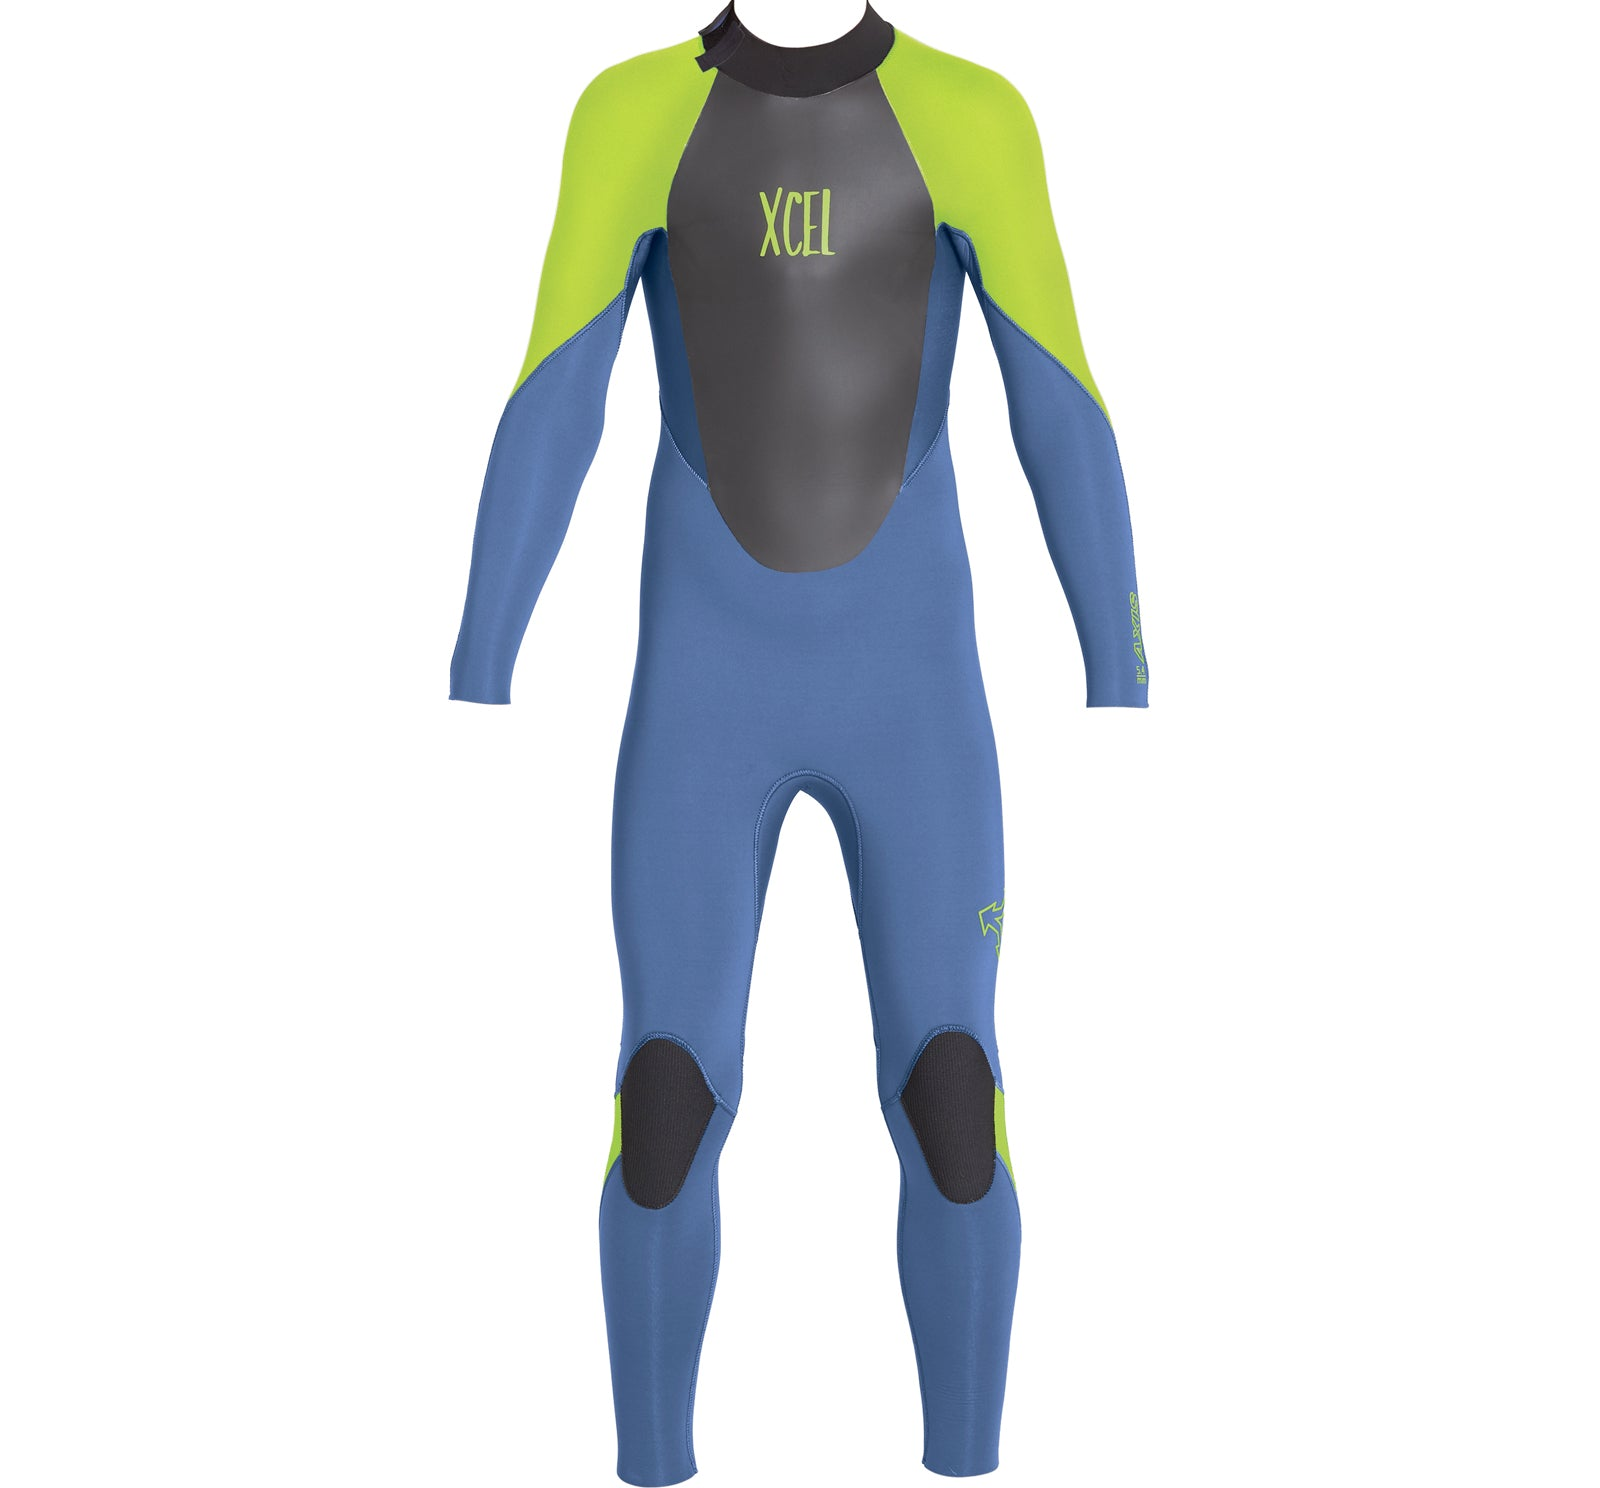 Xcel Axis 3/2mm Youth Back Zip L/S Fullsuit Wetsuit